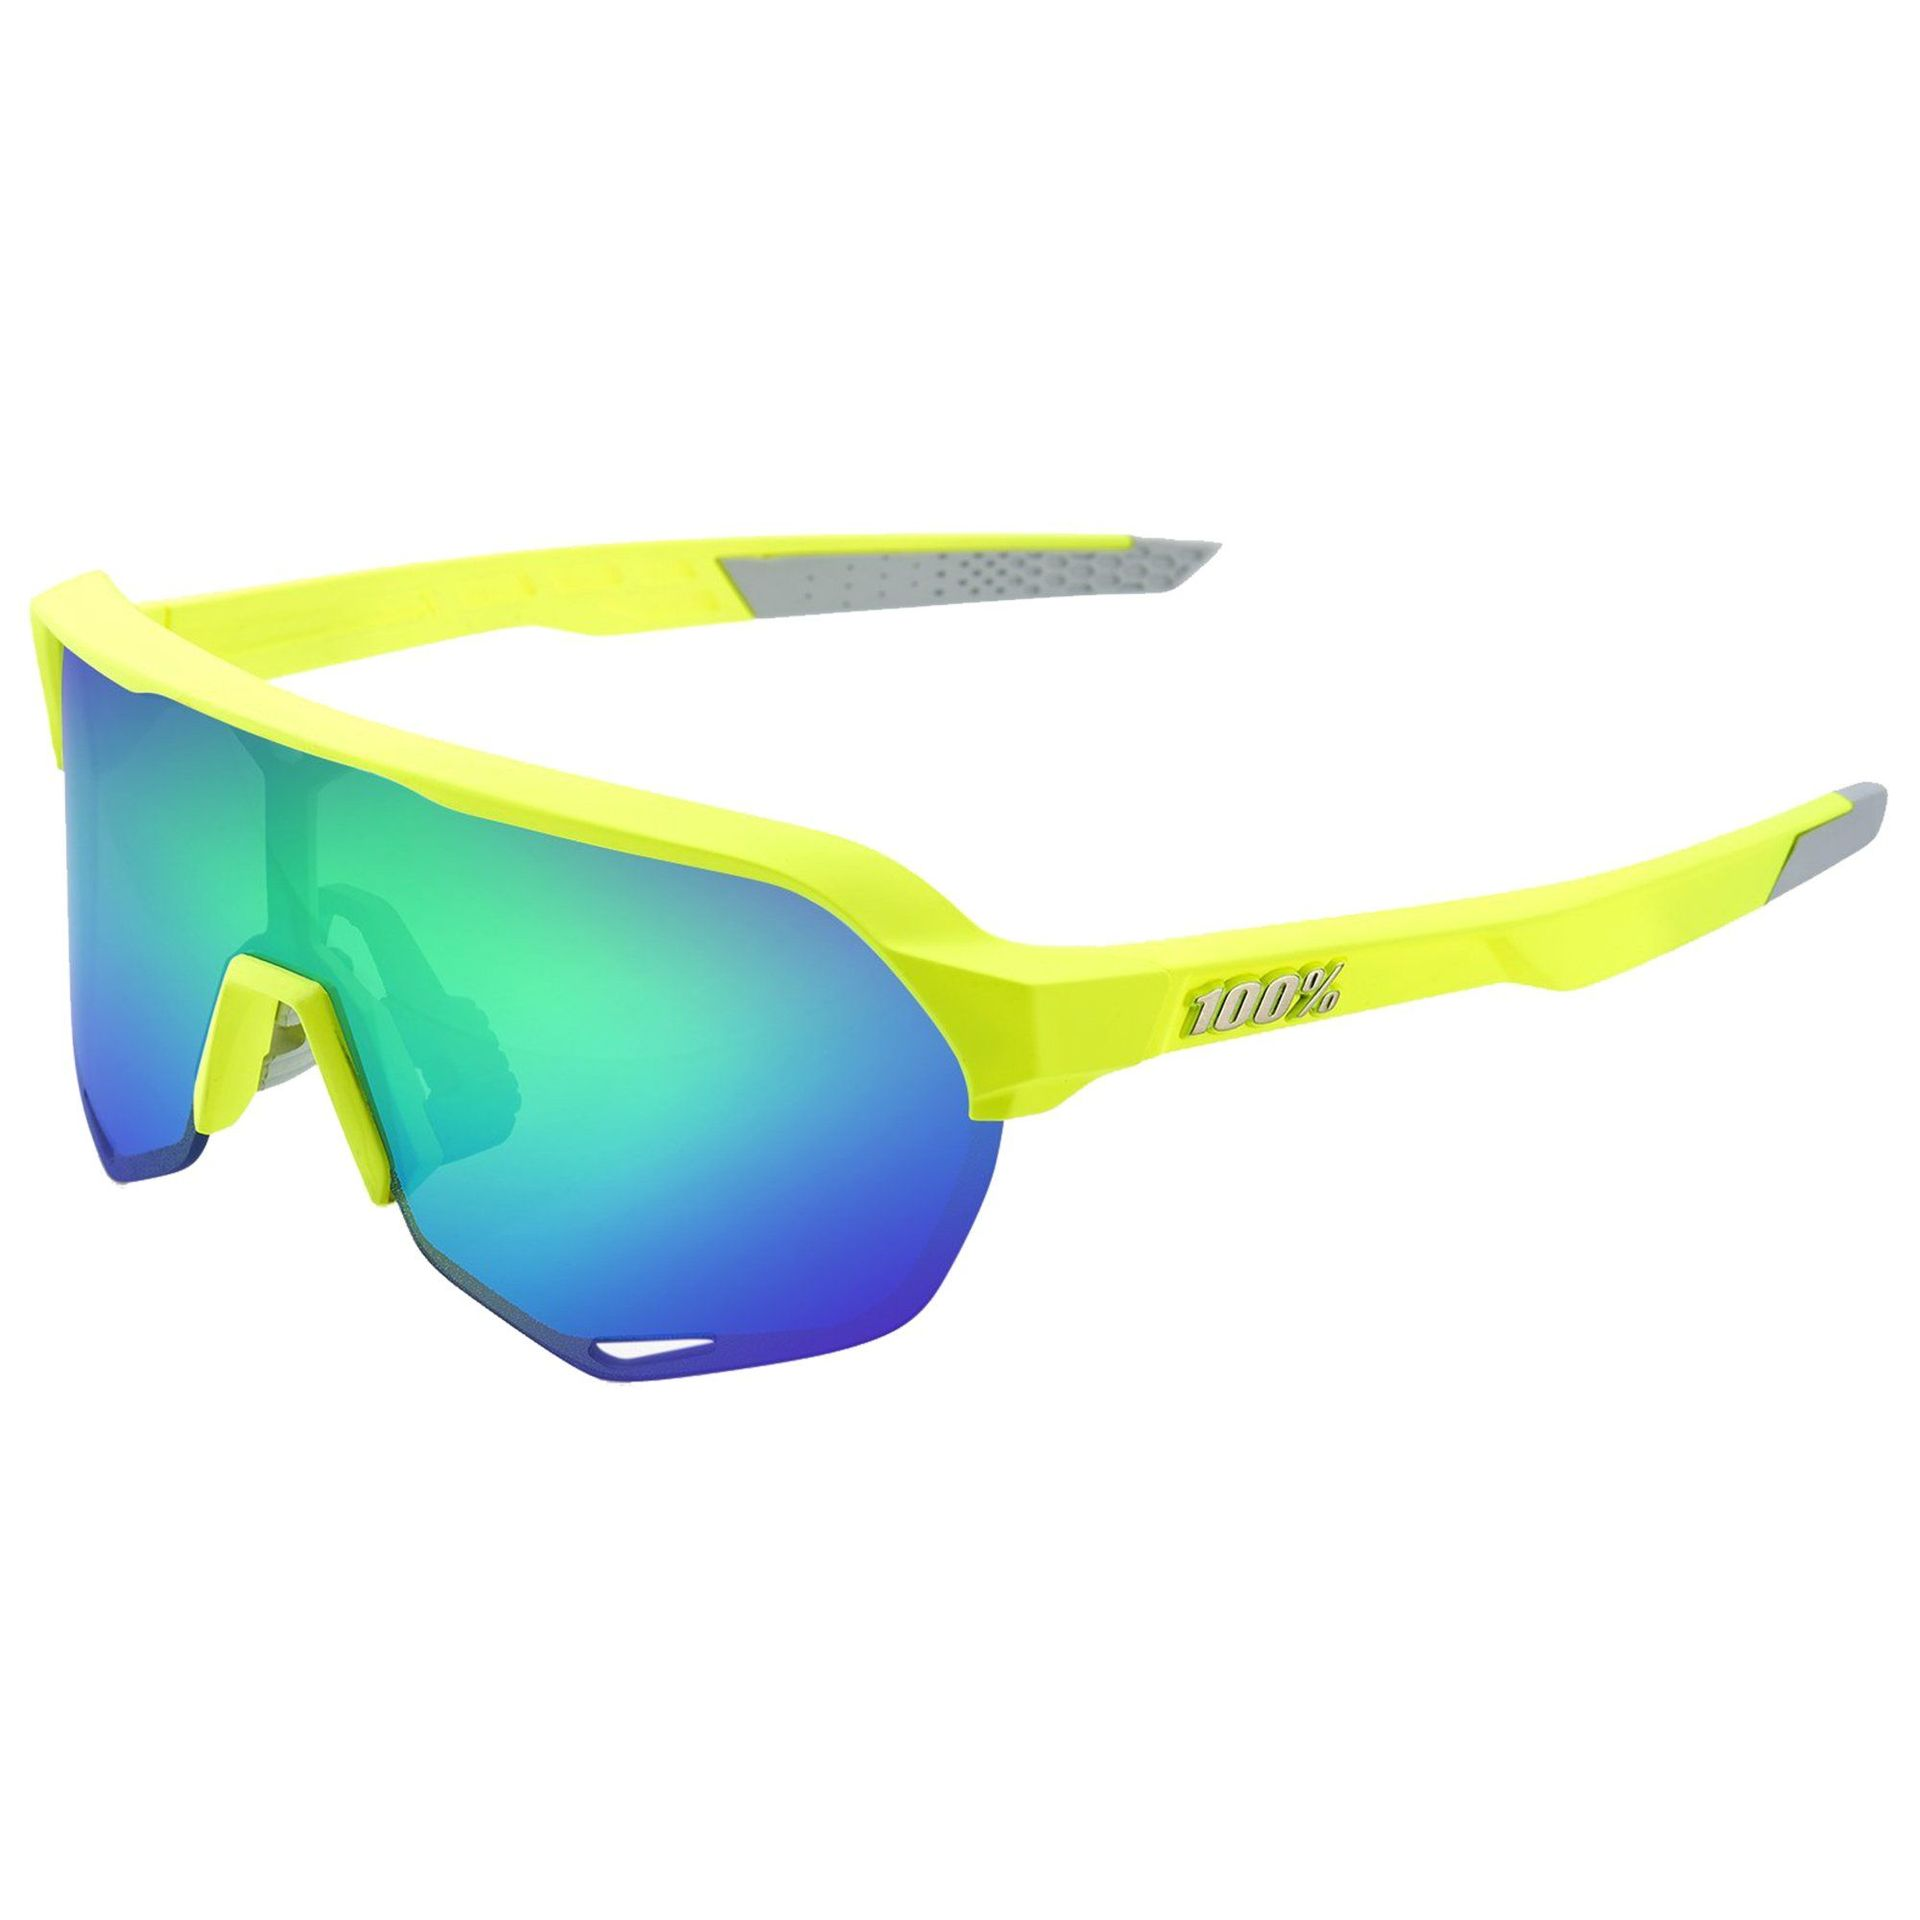 OKULARY 100% S2 MATTE FLUO YELLOW|GREEN ML 1